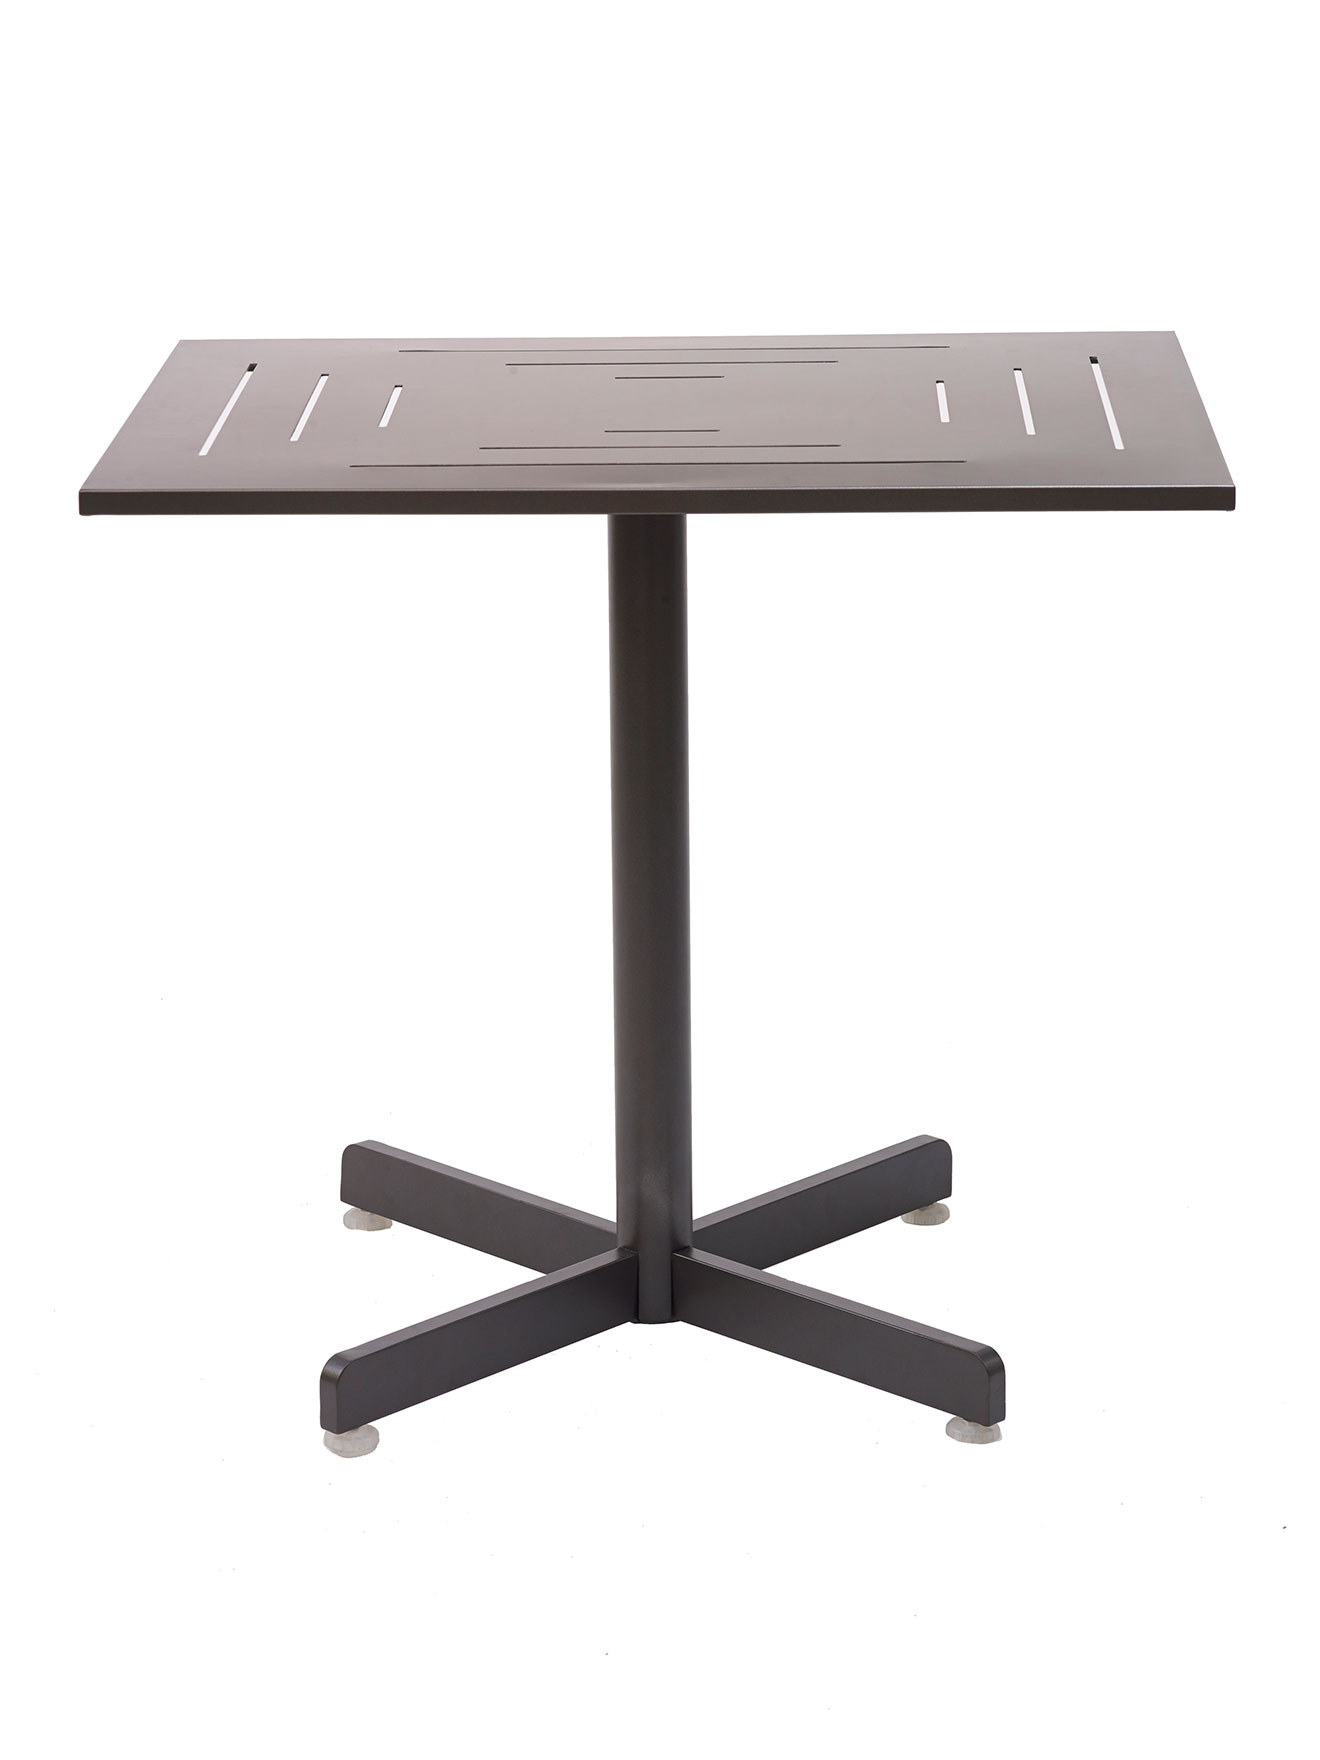 NATALIE TABLE TOPS $159.00 – $299.00